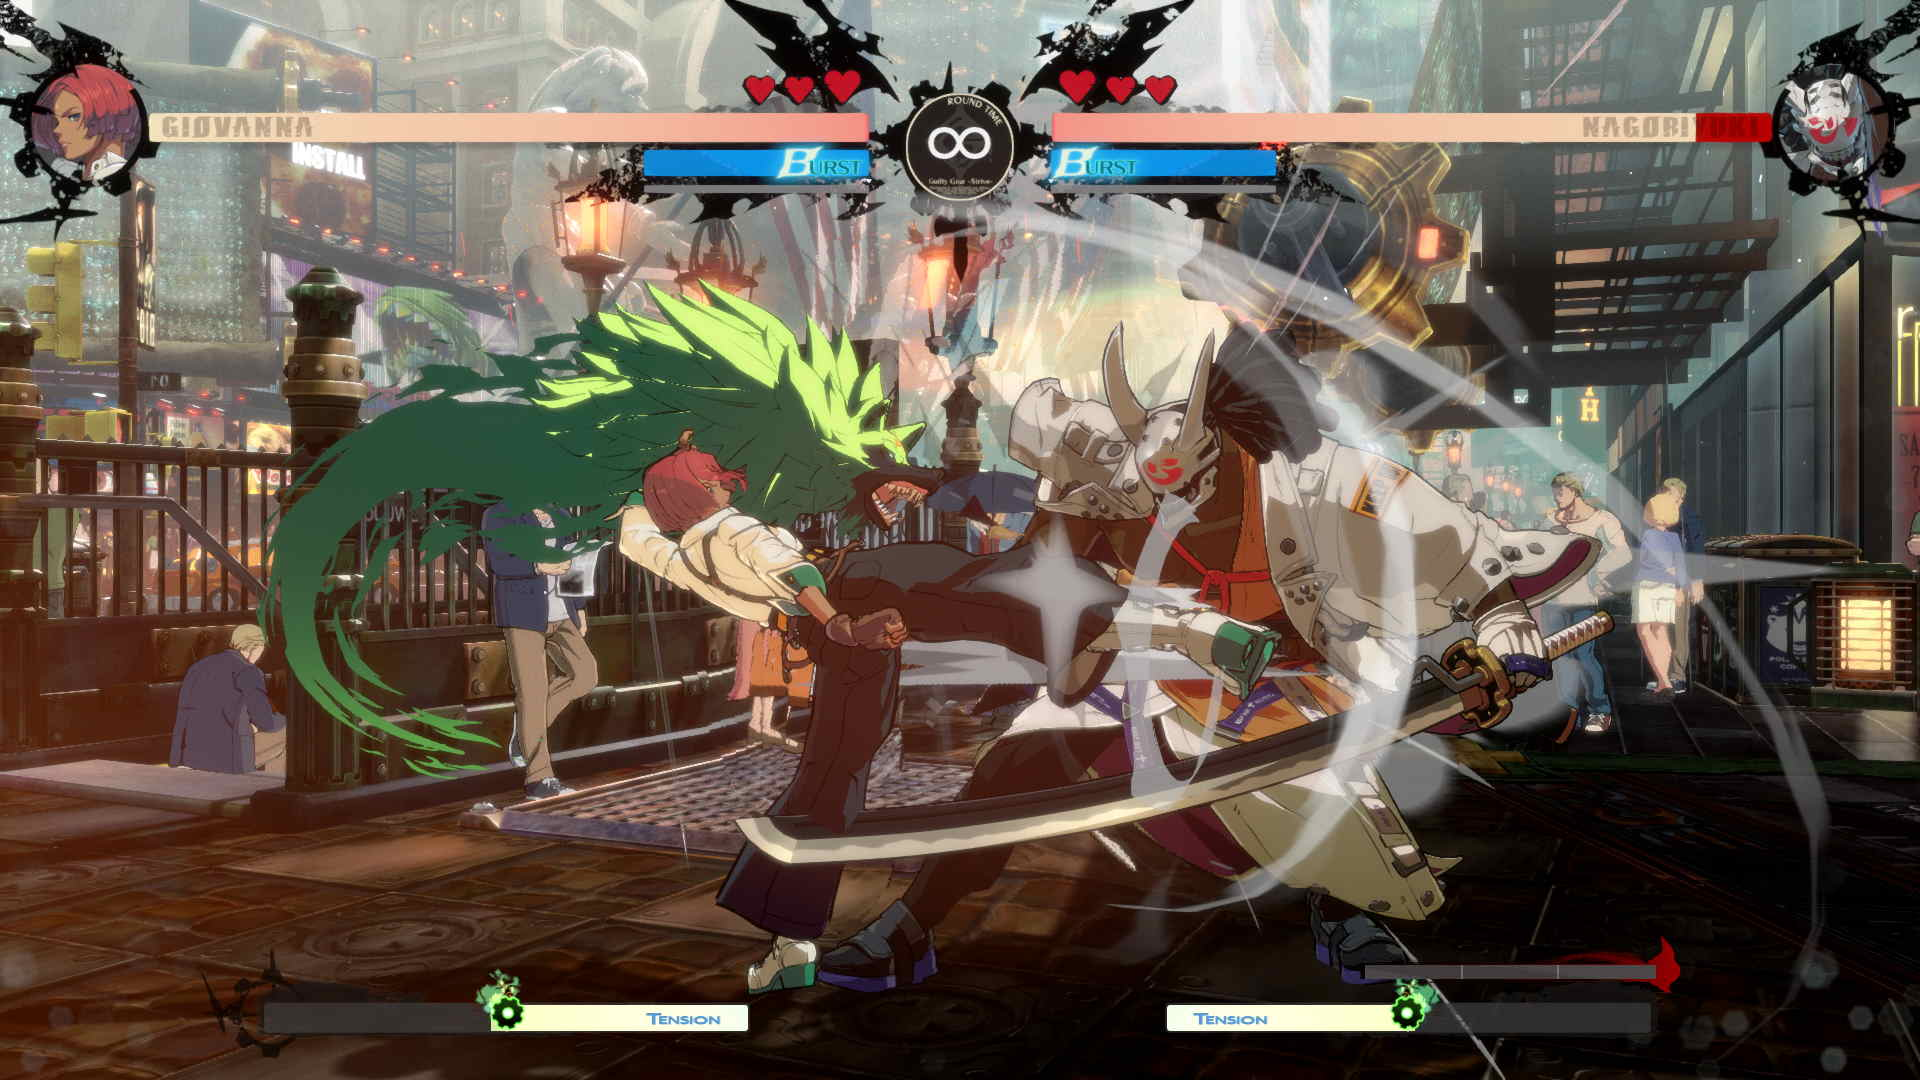 An in game screenshot of a fight